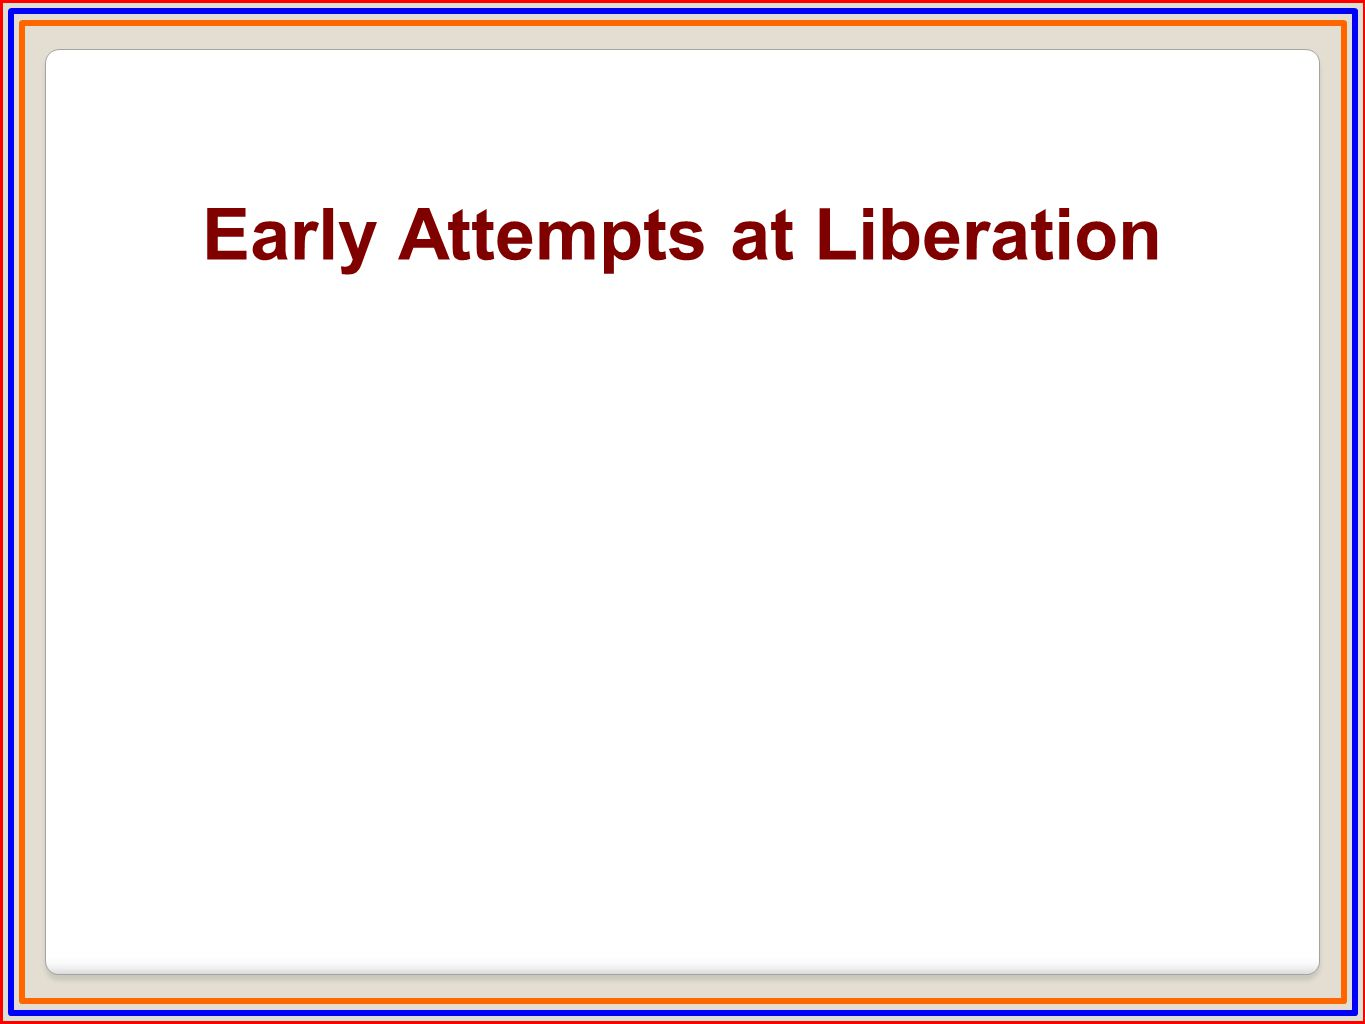 Early Attempts at Liberation